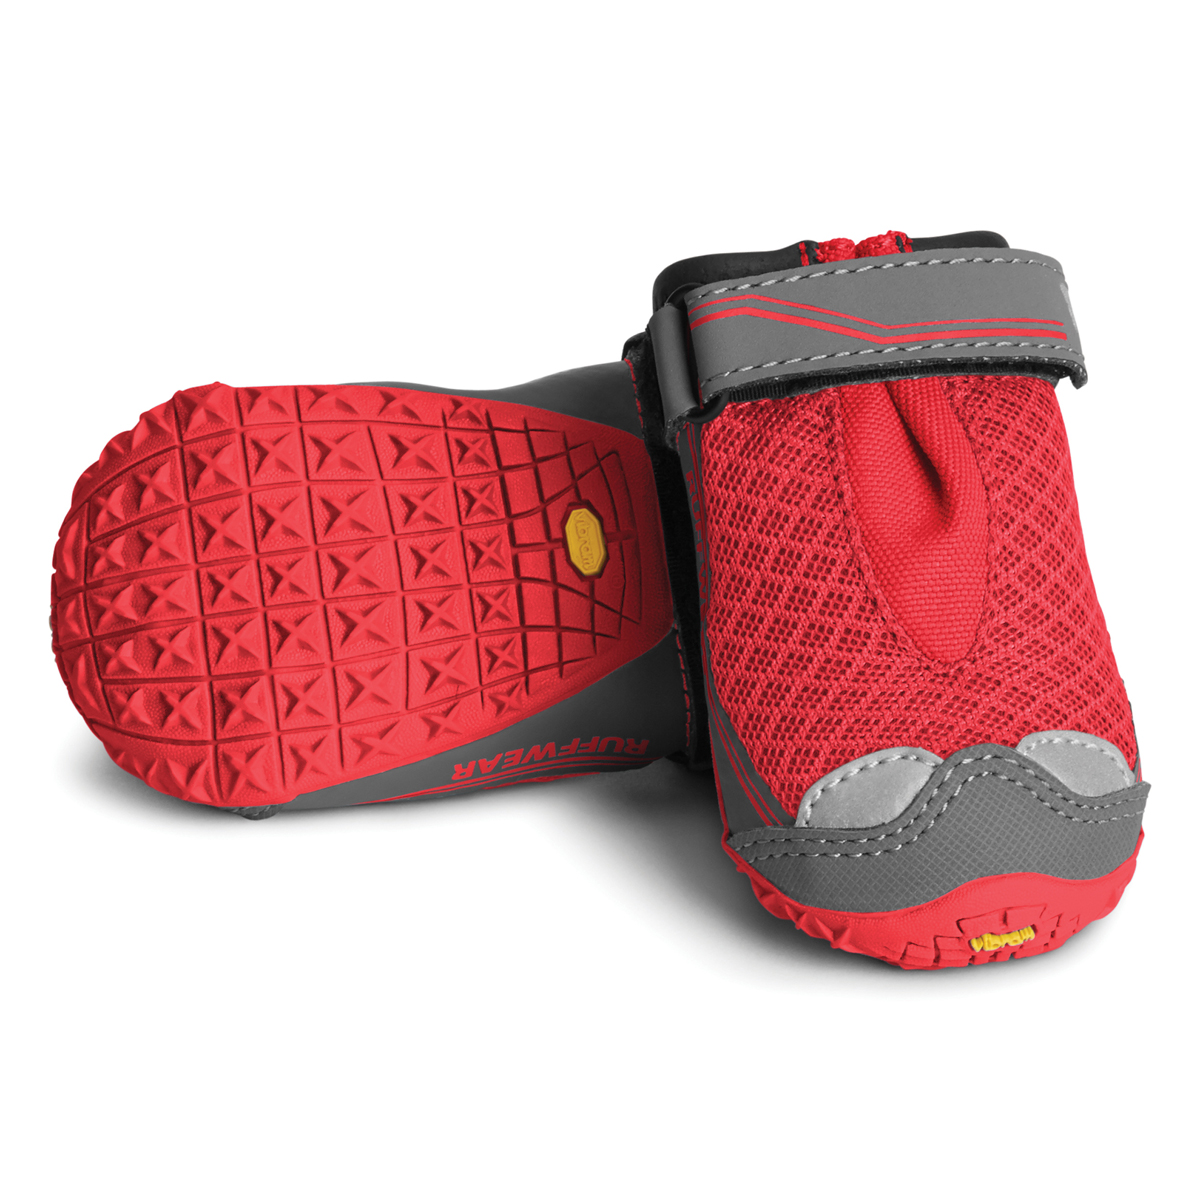 Grip Trex Dog Boots by RuffWear - Red Currant with Gray Trim